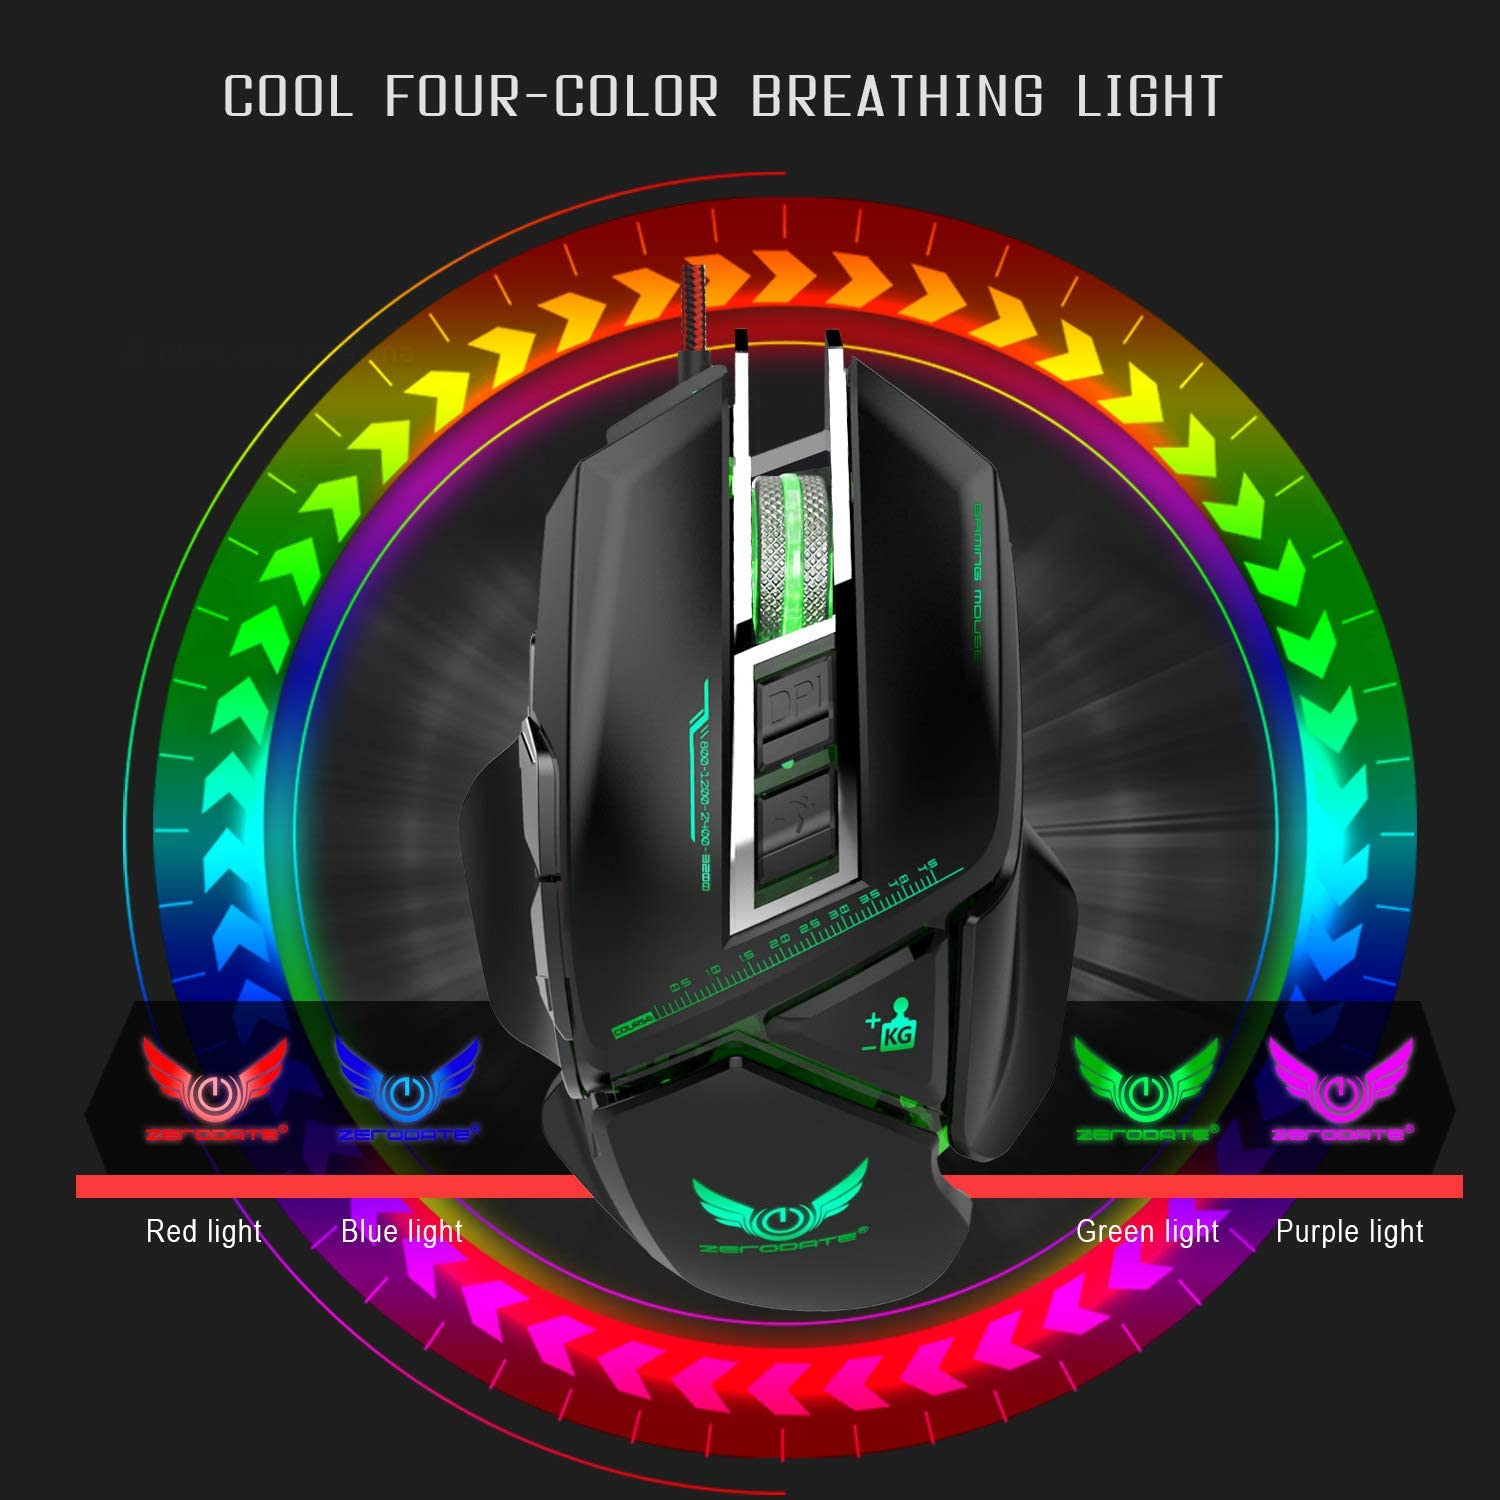 LED Breathing Light Mouse Full Key Macro Definition Free Set Addition and Subtraction Weight Block 1200//1600//2400//3200DPI for Office Games,Black GWX Wired Mechanical Mouse